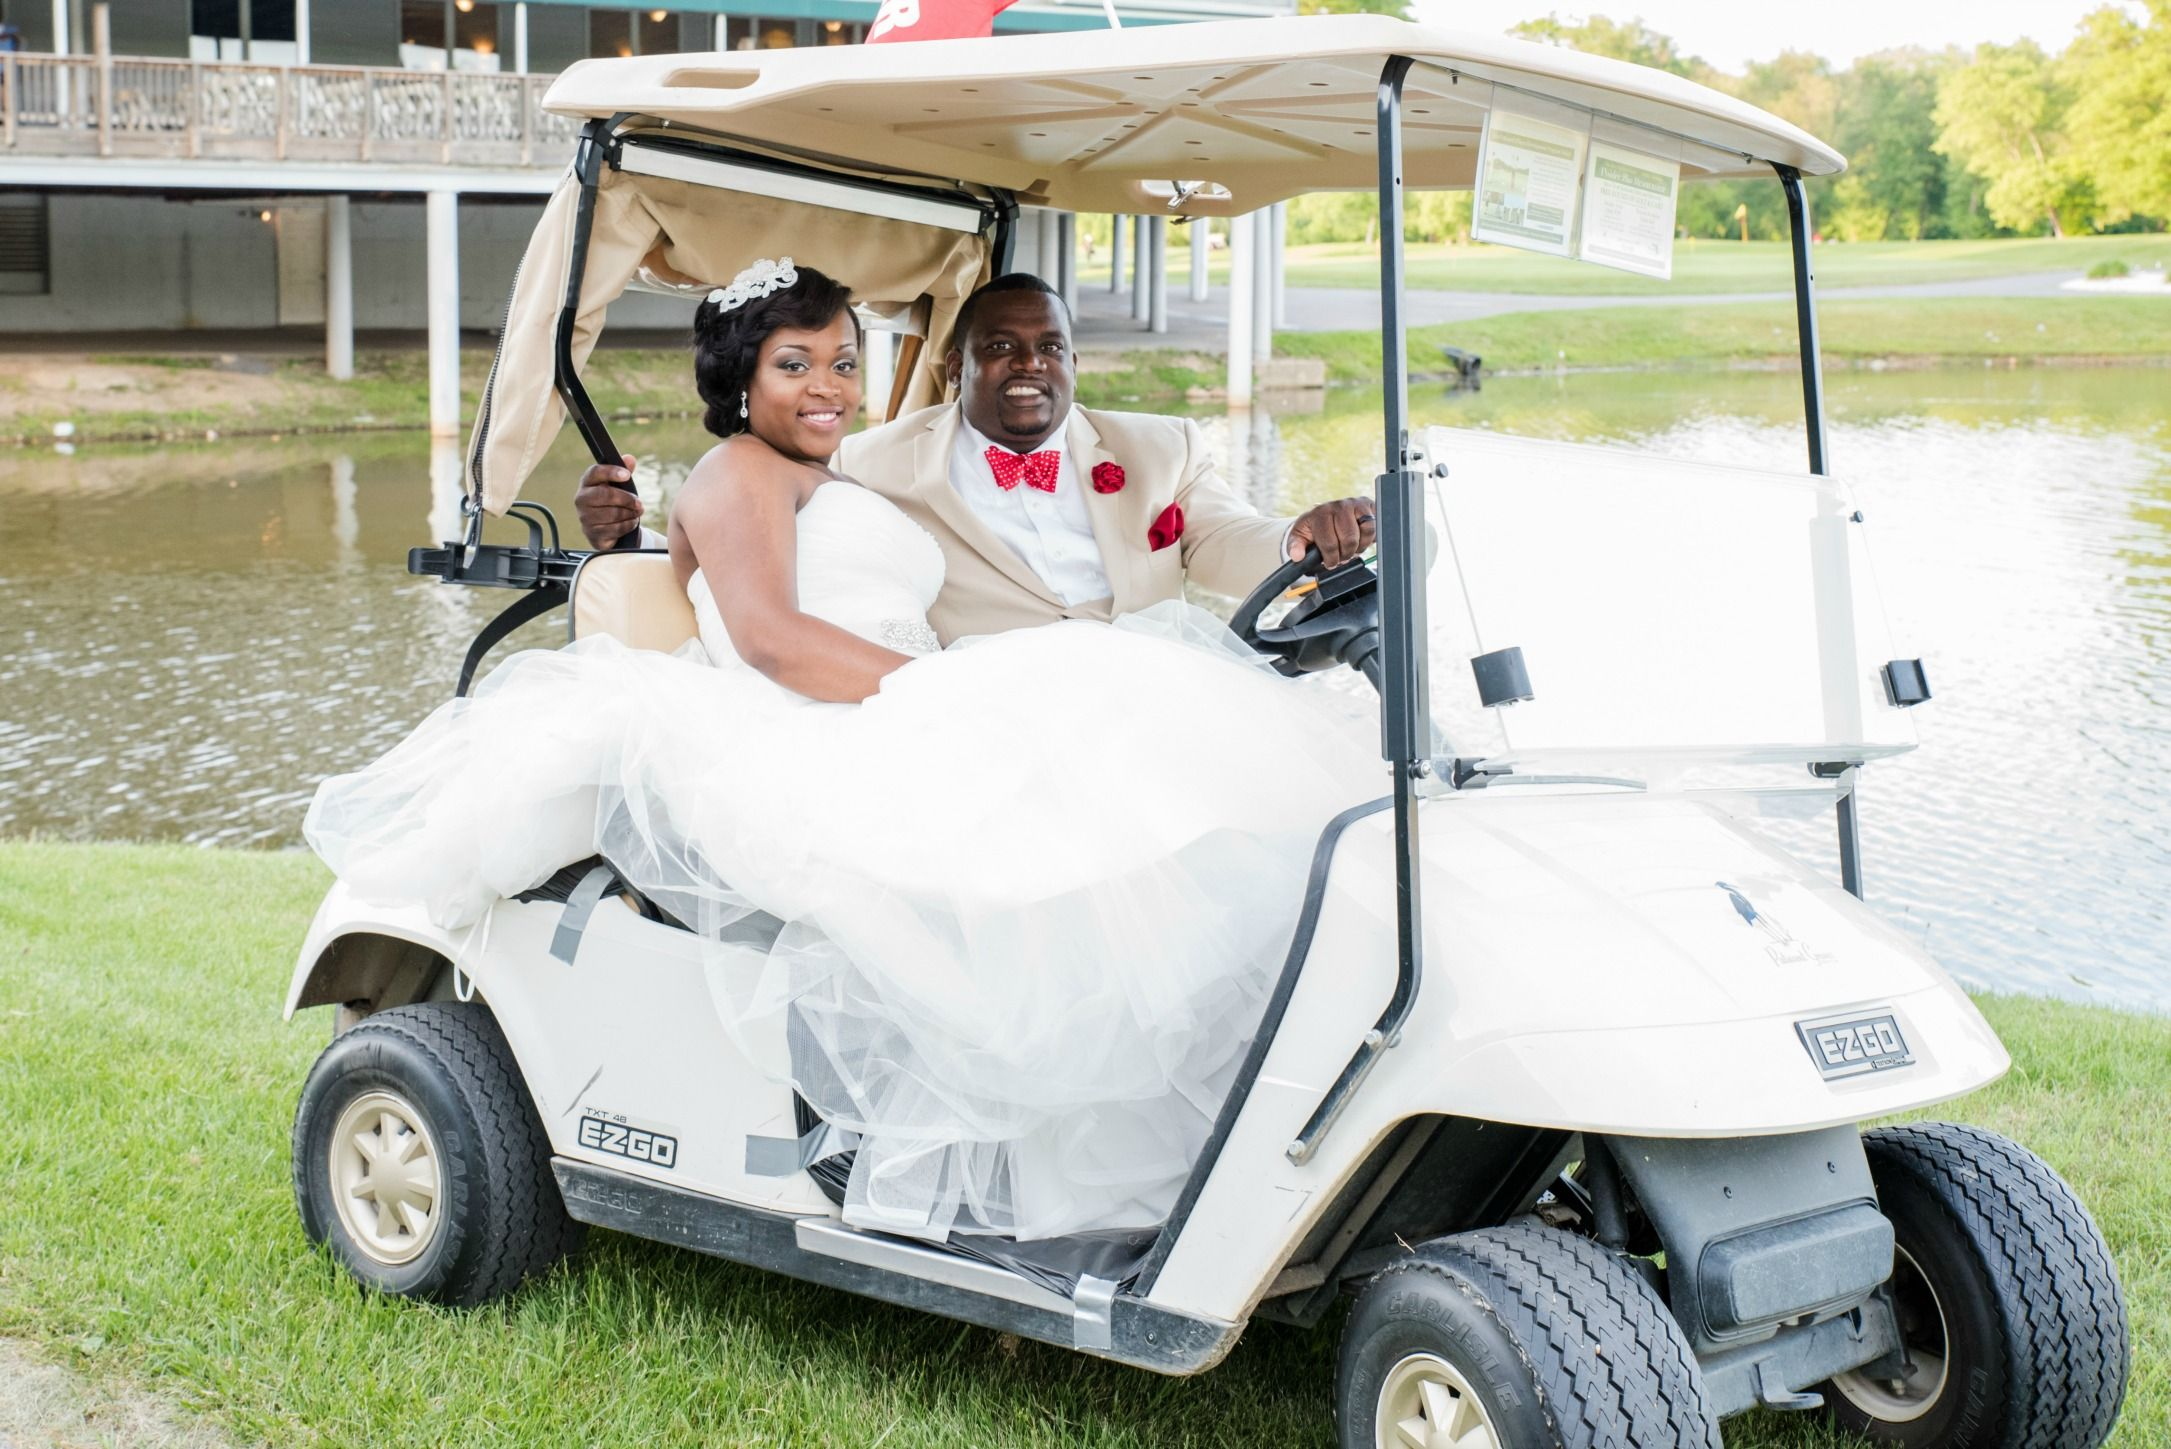 Ashley Marie Photography | Wedding Photoshoots at the Club ... on golf trolley, golf games, golf hitting nets, golf machine, golf buggy, golf girls, golf players, golf handicap, golf cartoons, golf card, golf words, golf tools, golf accessories,